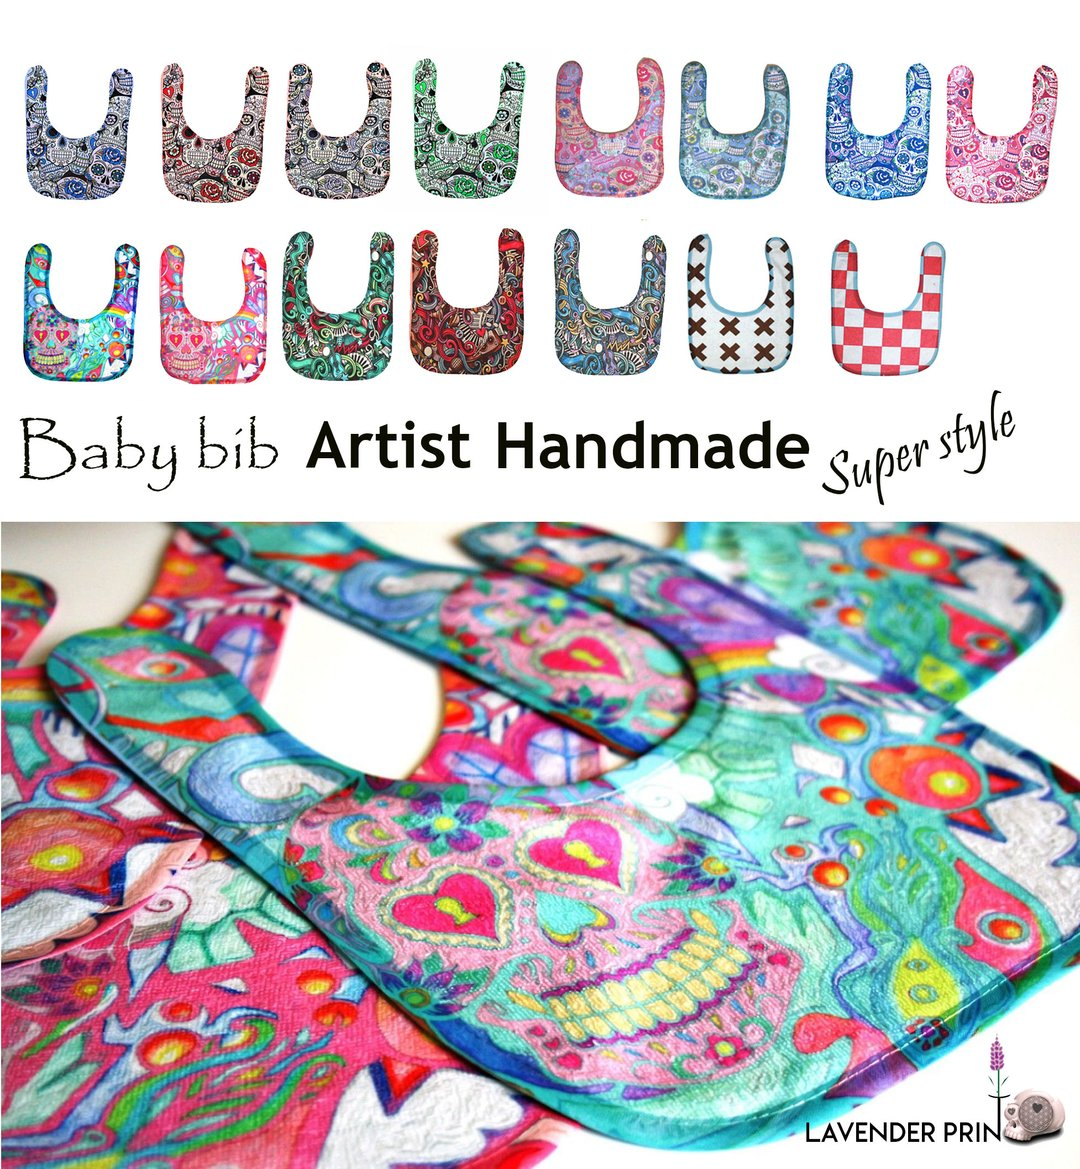 promotion_15_baby_bibs_1080x